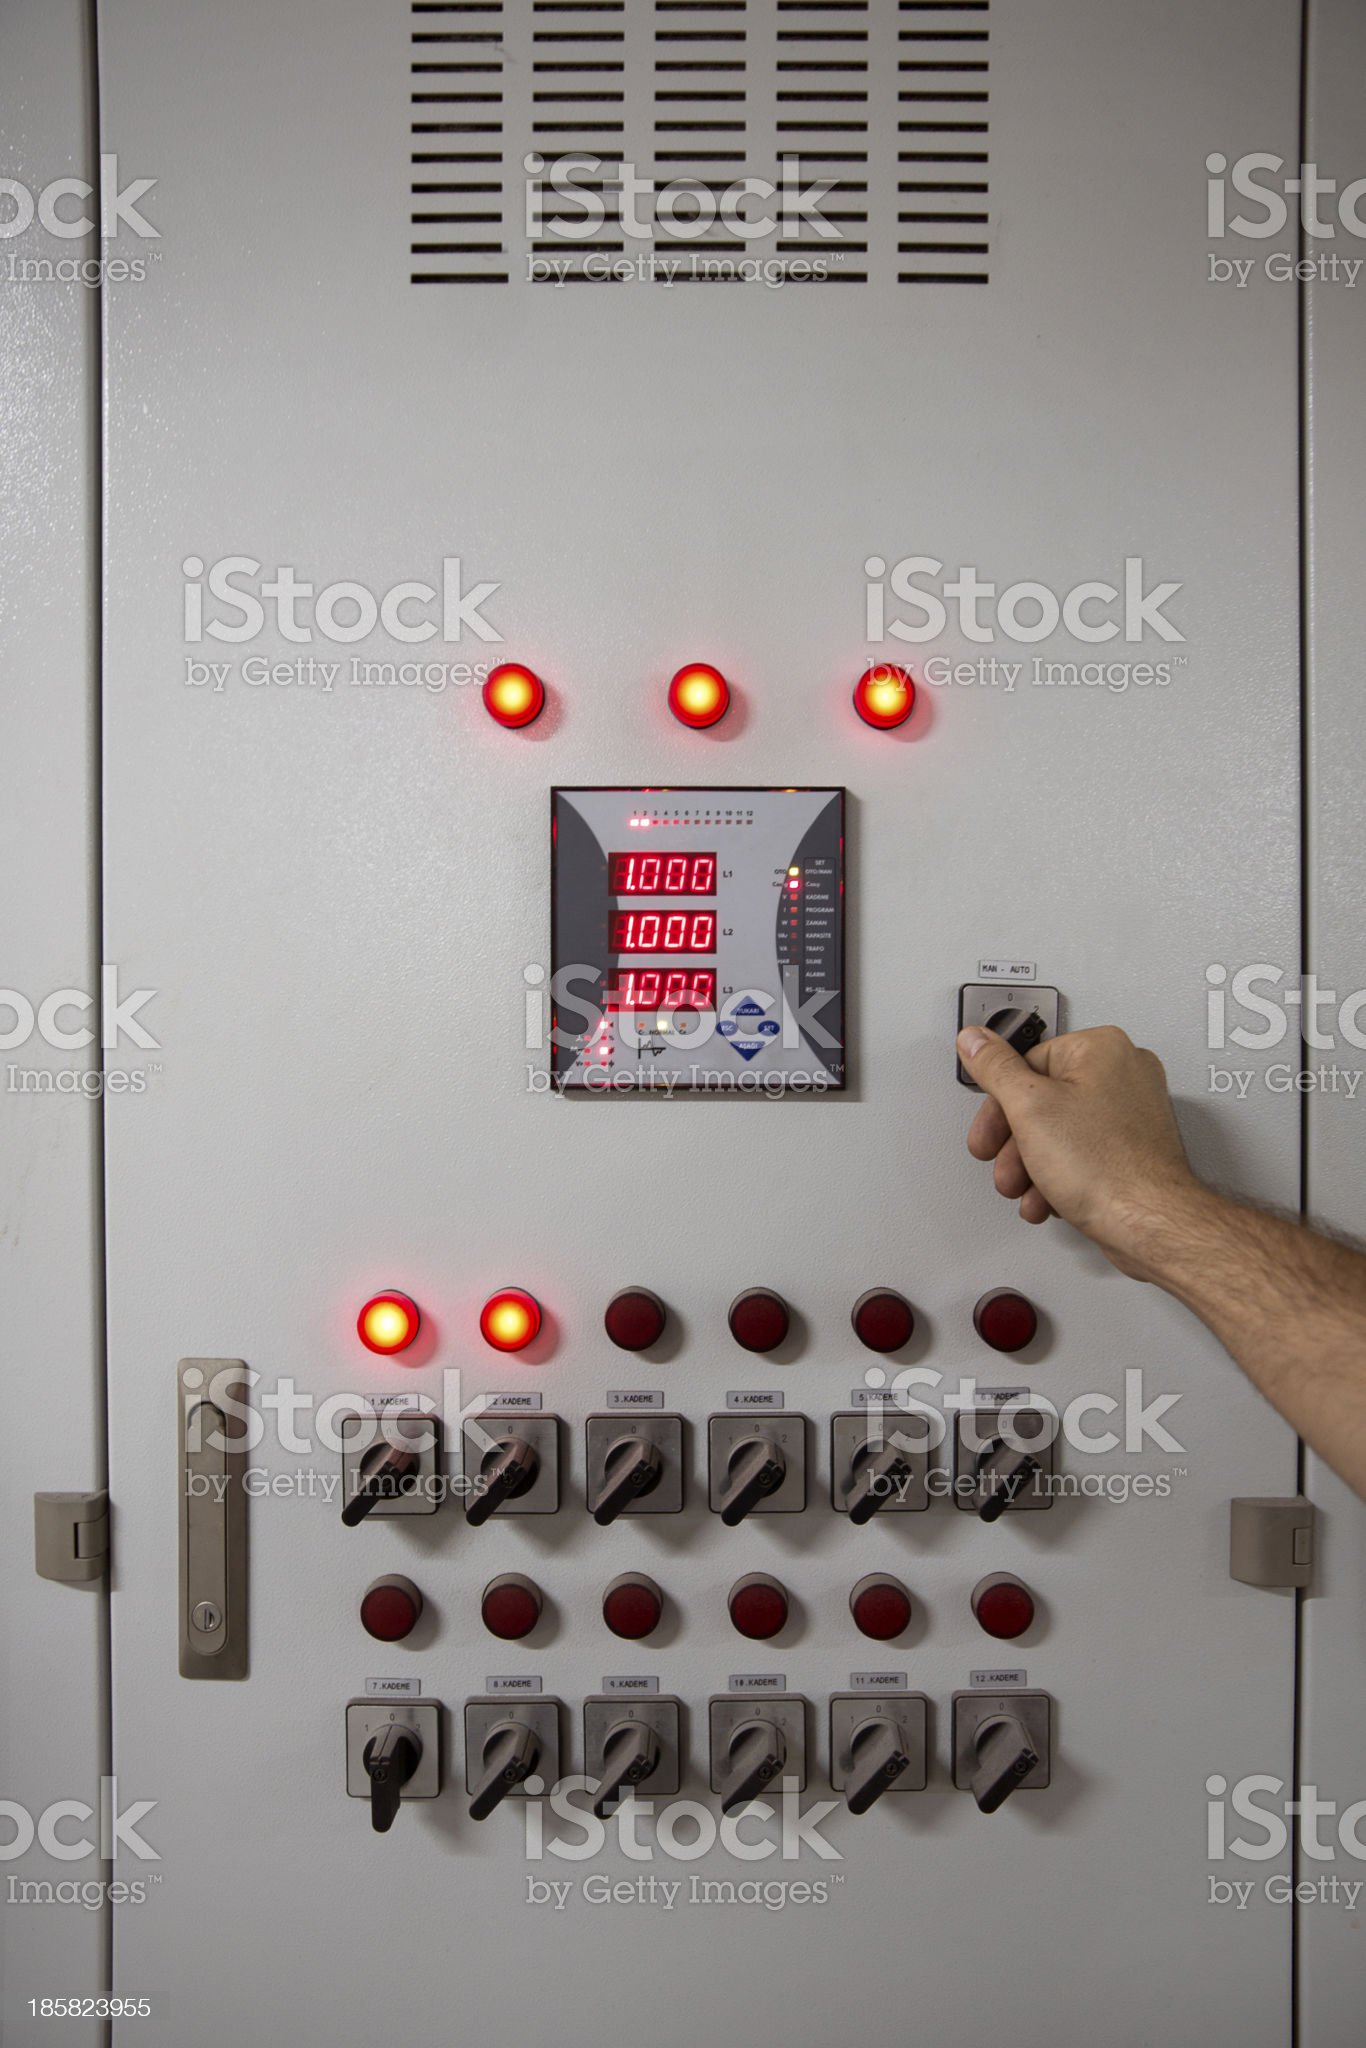 Shut Down The System royalty-free stock photo